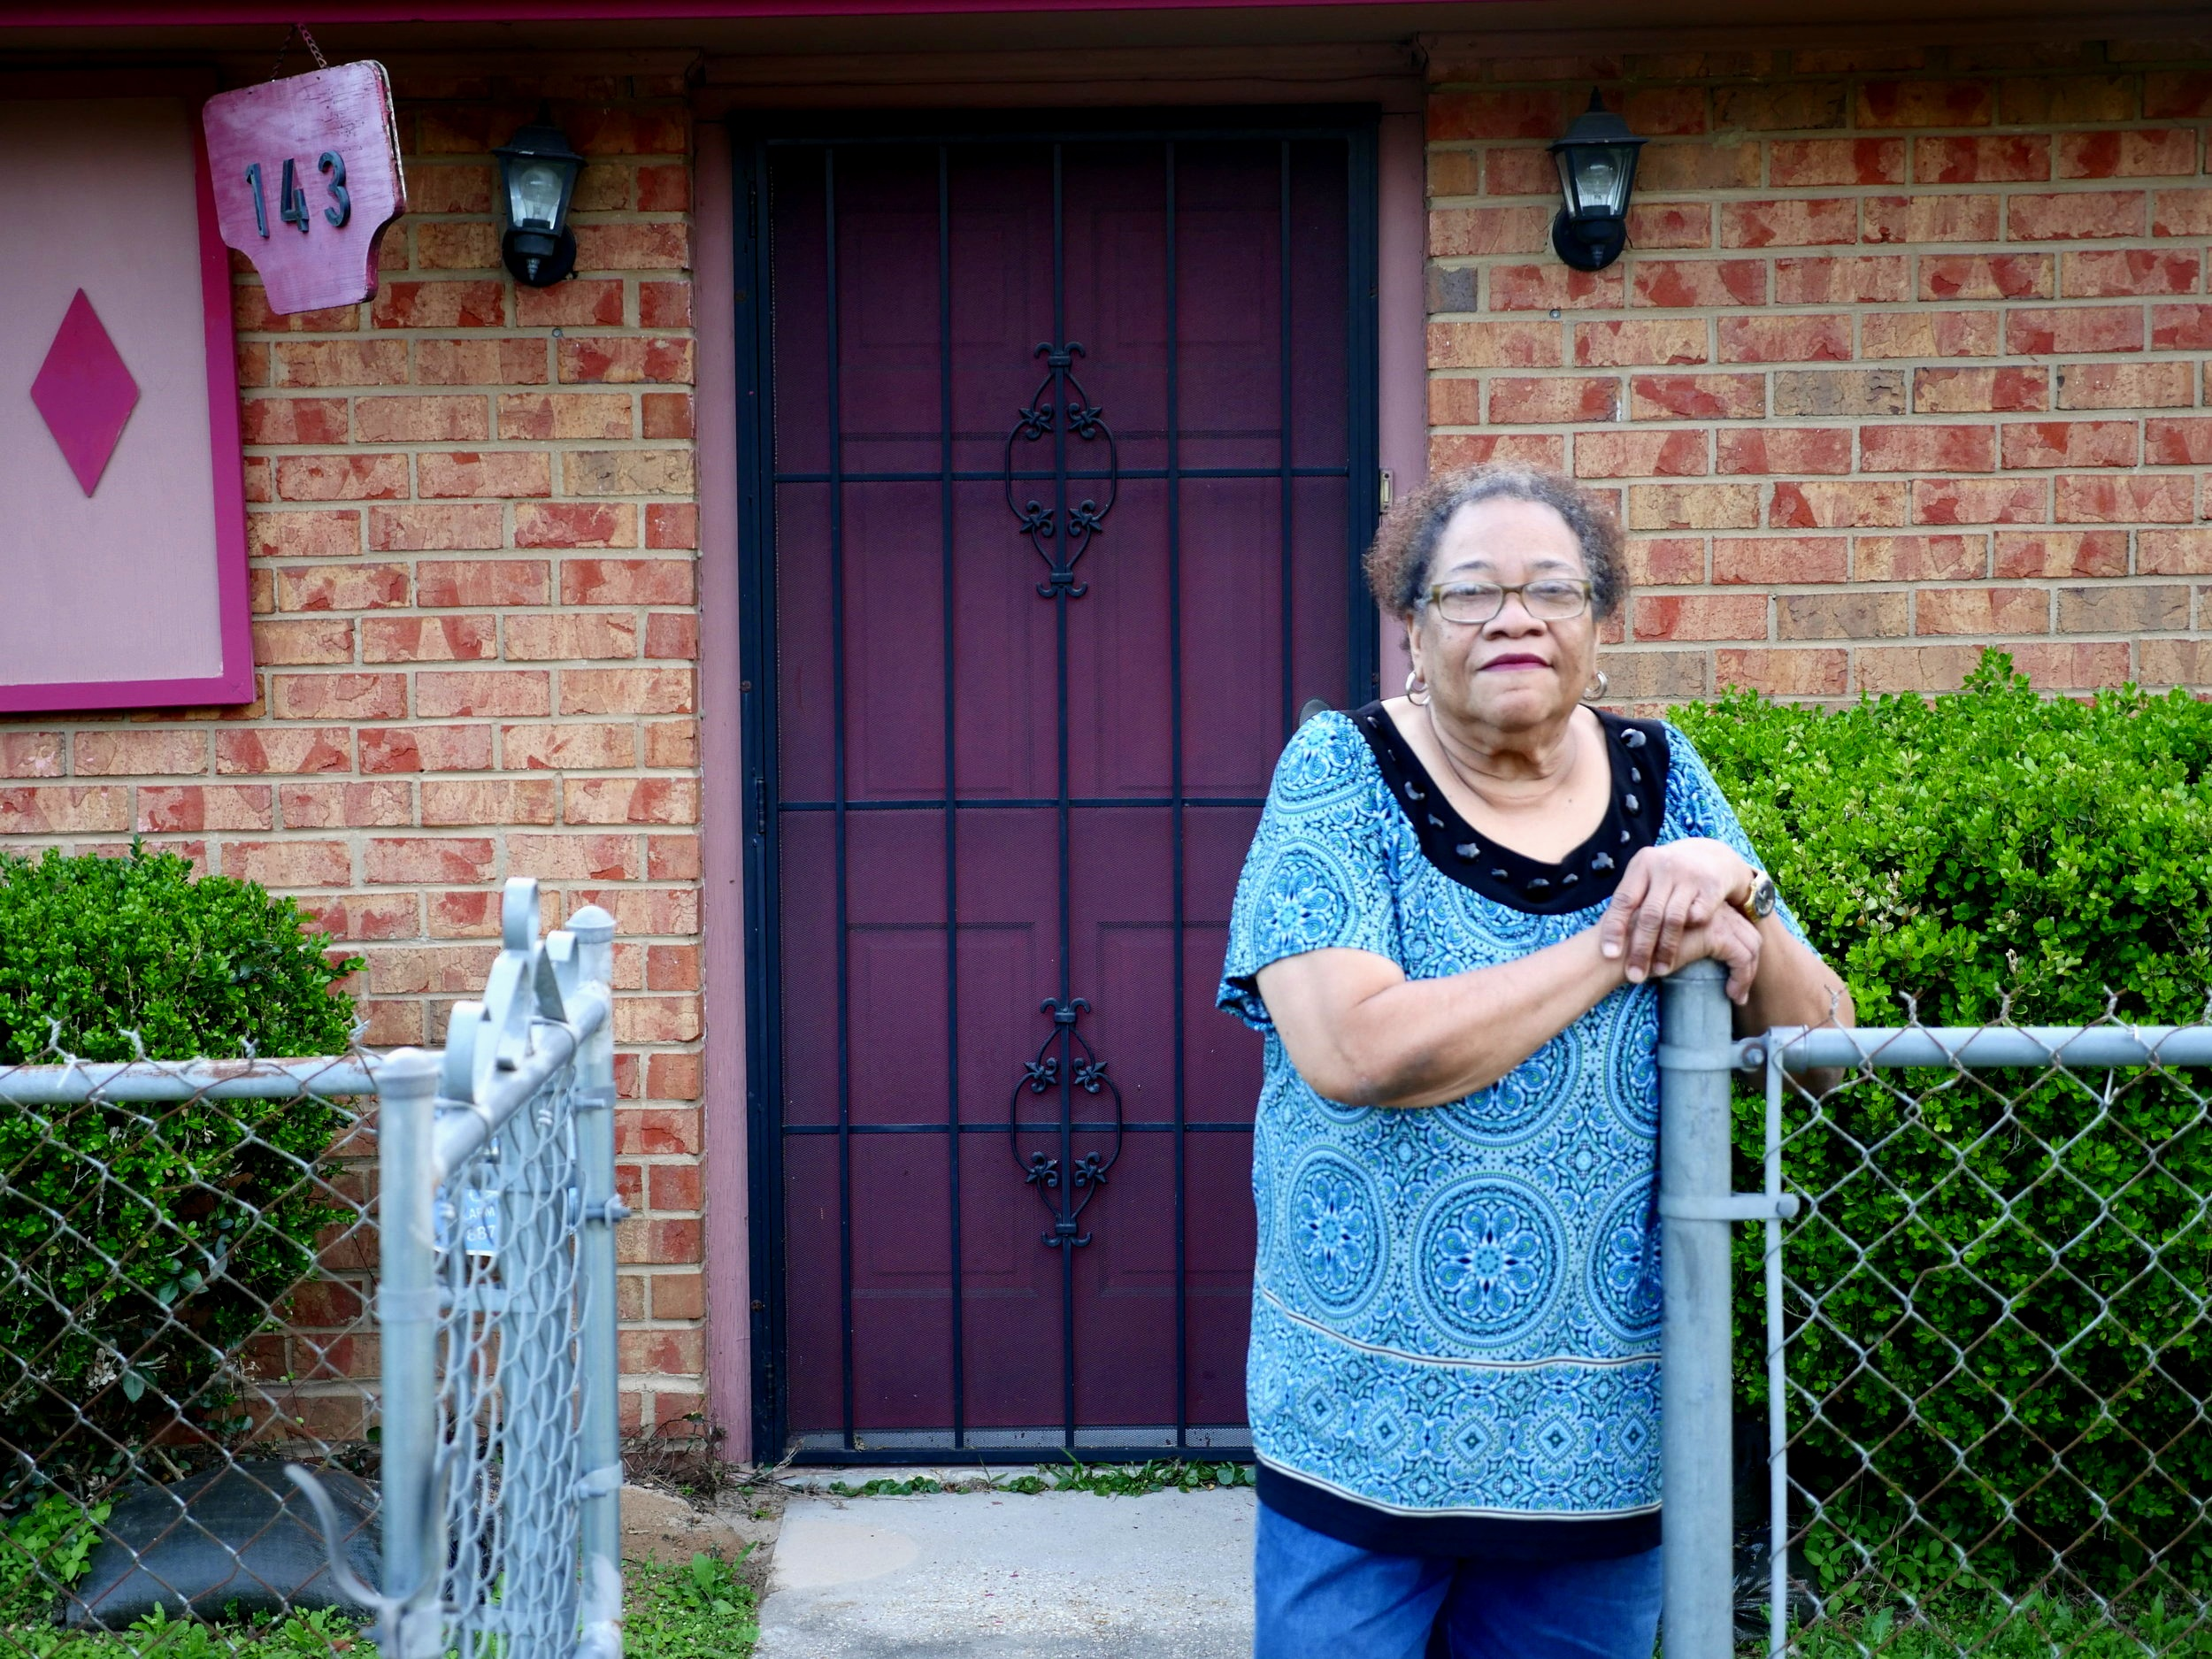 Gloria Dumas, pictured here, is a member of the Concerned Citizens of St. John the Baptist Parish community group. Concerned Citizens has been organizing since 2016 to reduce chloroprene emissions from the neighboring Denka/DuPont neoprene facility.